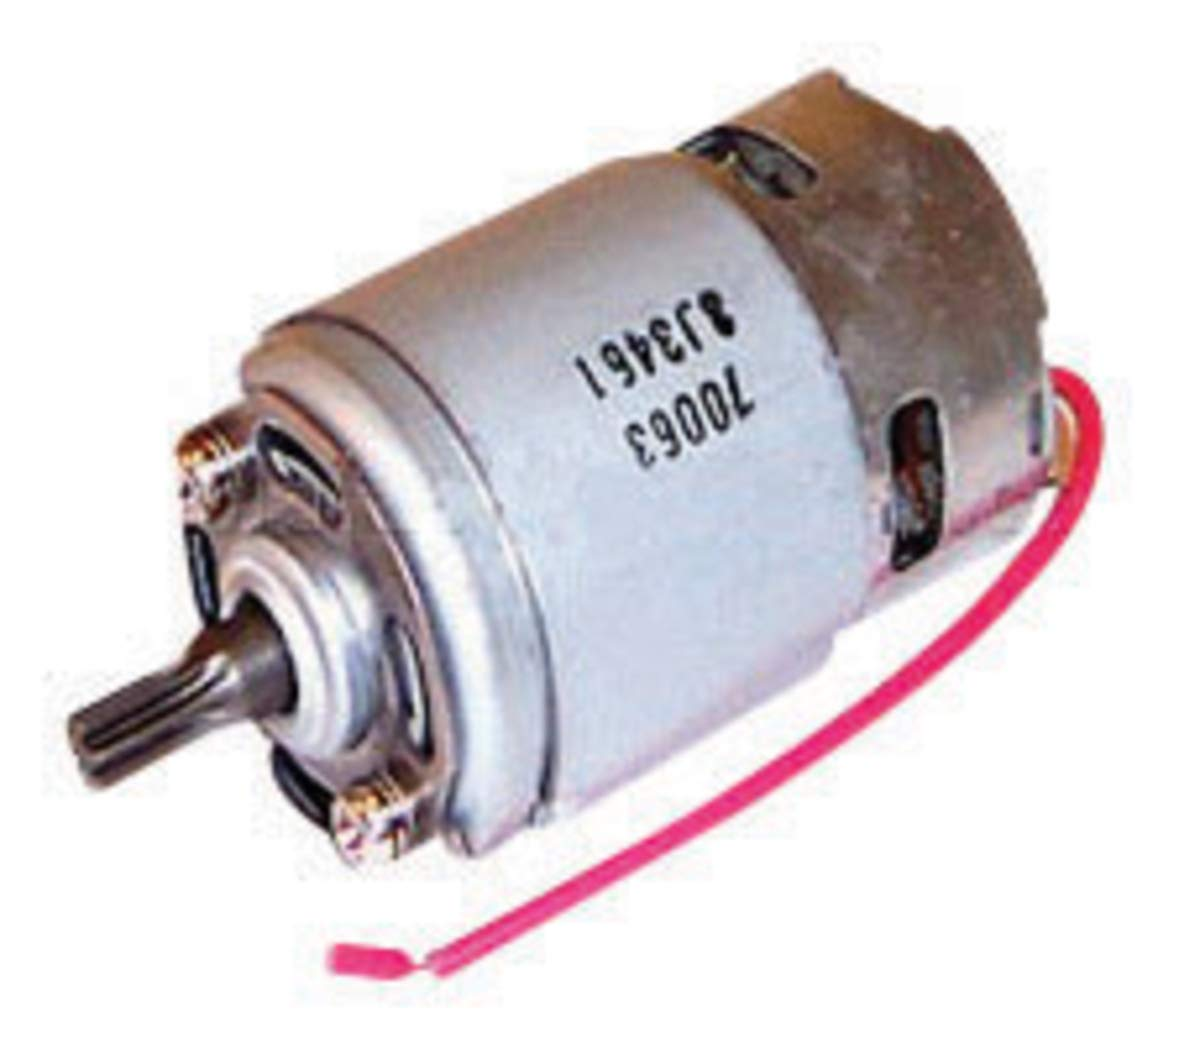 Milwaukee Motor Assembly (For Use With 14.4 V Square And Hex Impact Wrench), Package Size: 1 Each